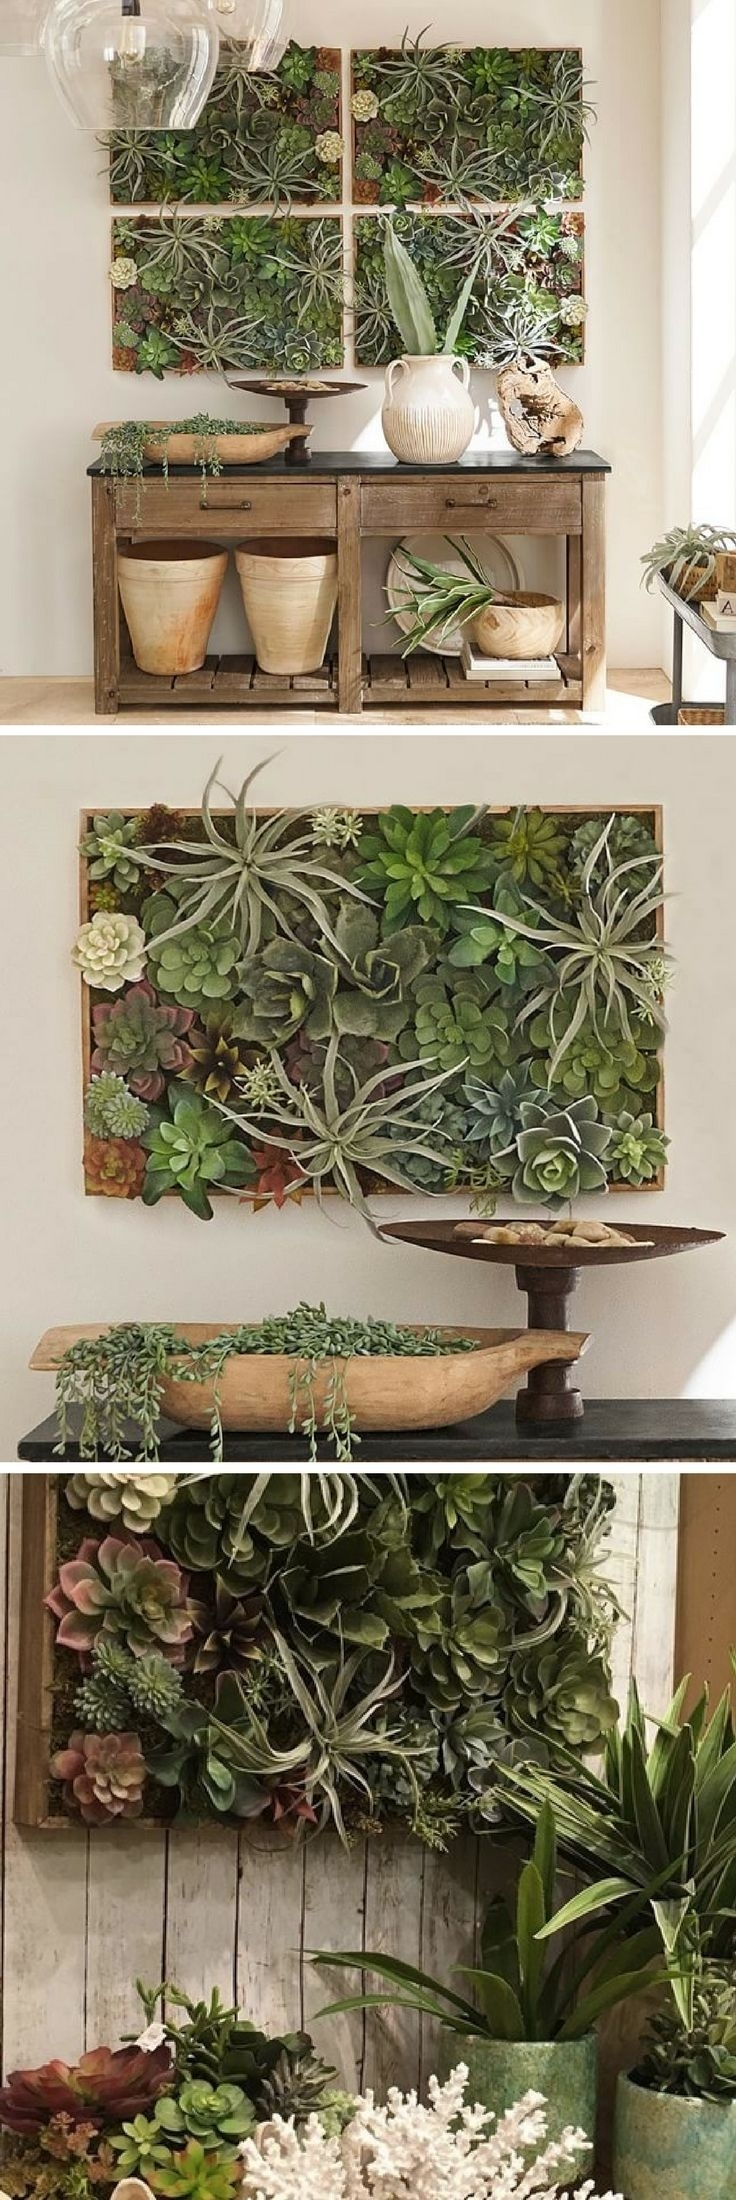 Succulent Wall | Planter | Wall Art | Faux Plants | Ad | Kitchen Regarding Most Up To Date Succulent Wall Art (View 12 of 20)